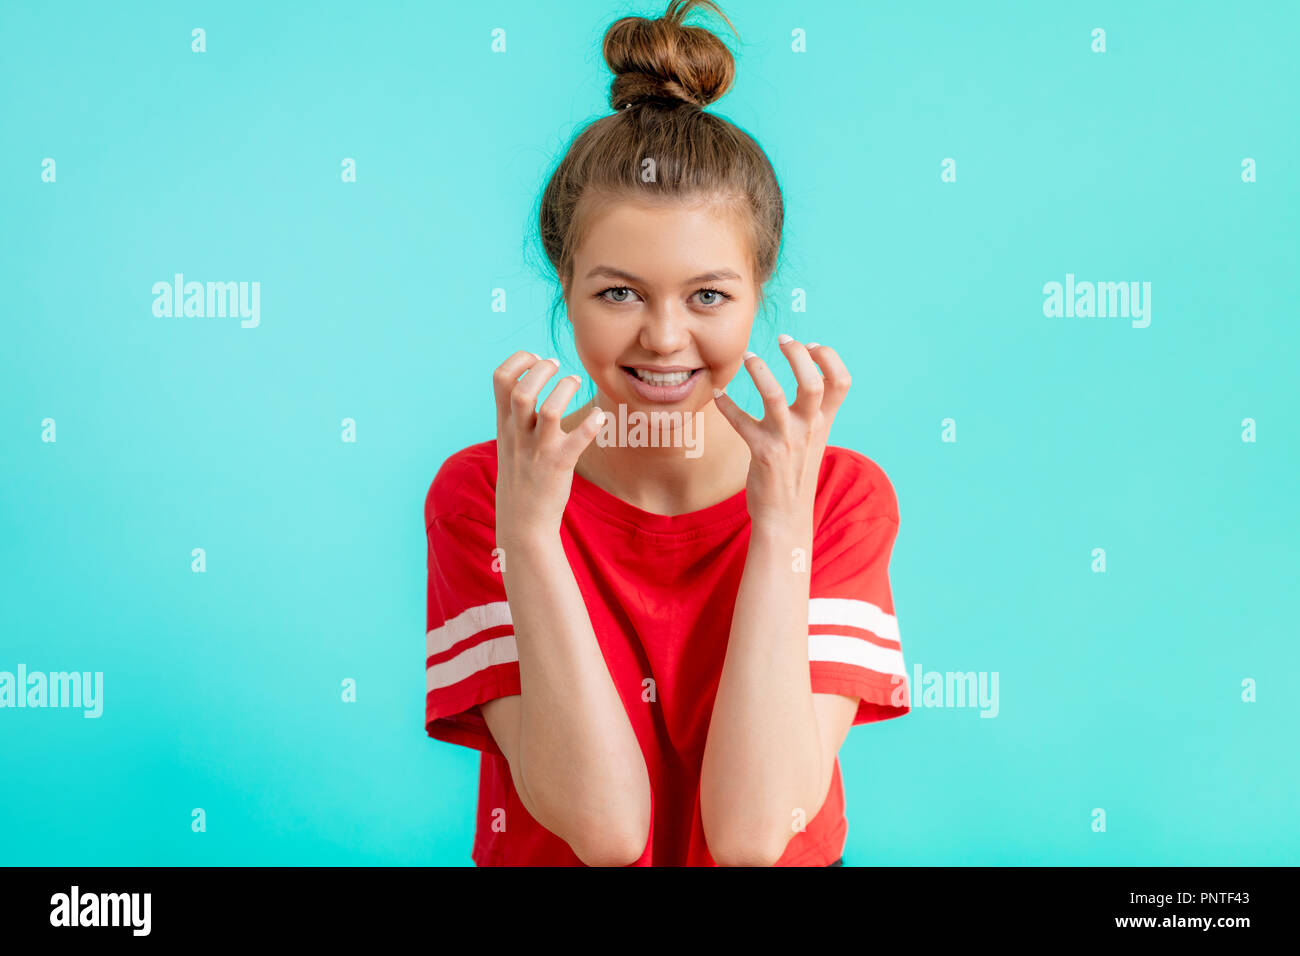 angry woman with crooked fingers - Stock Image